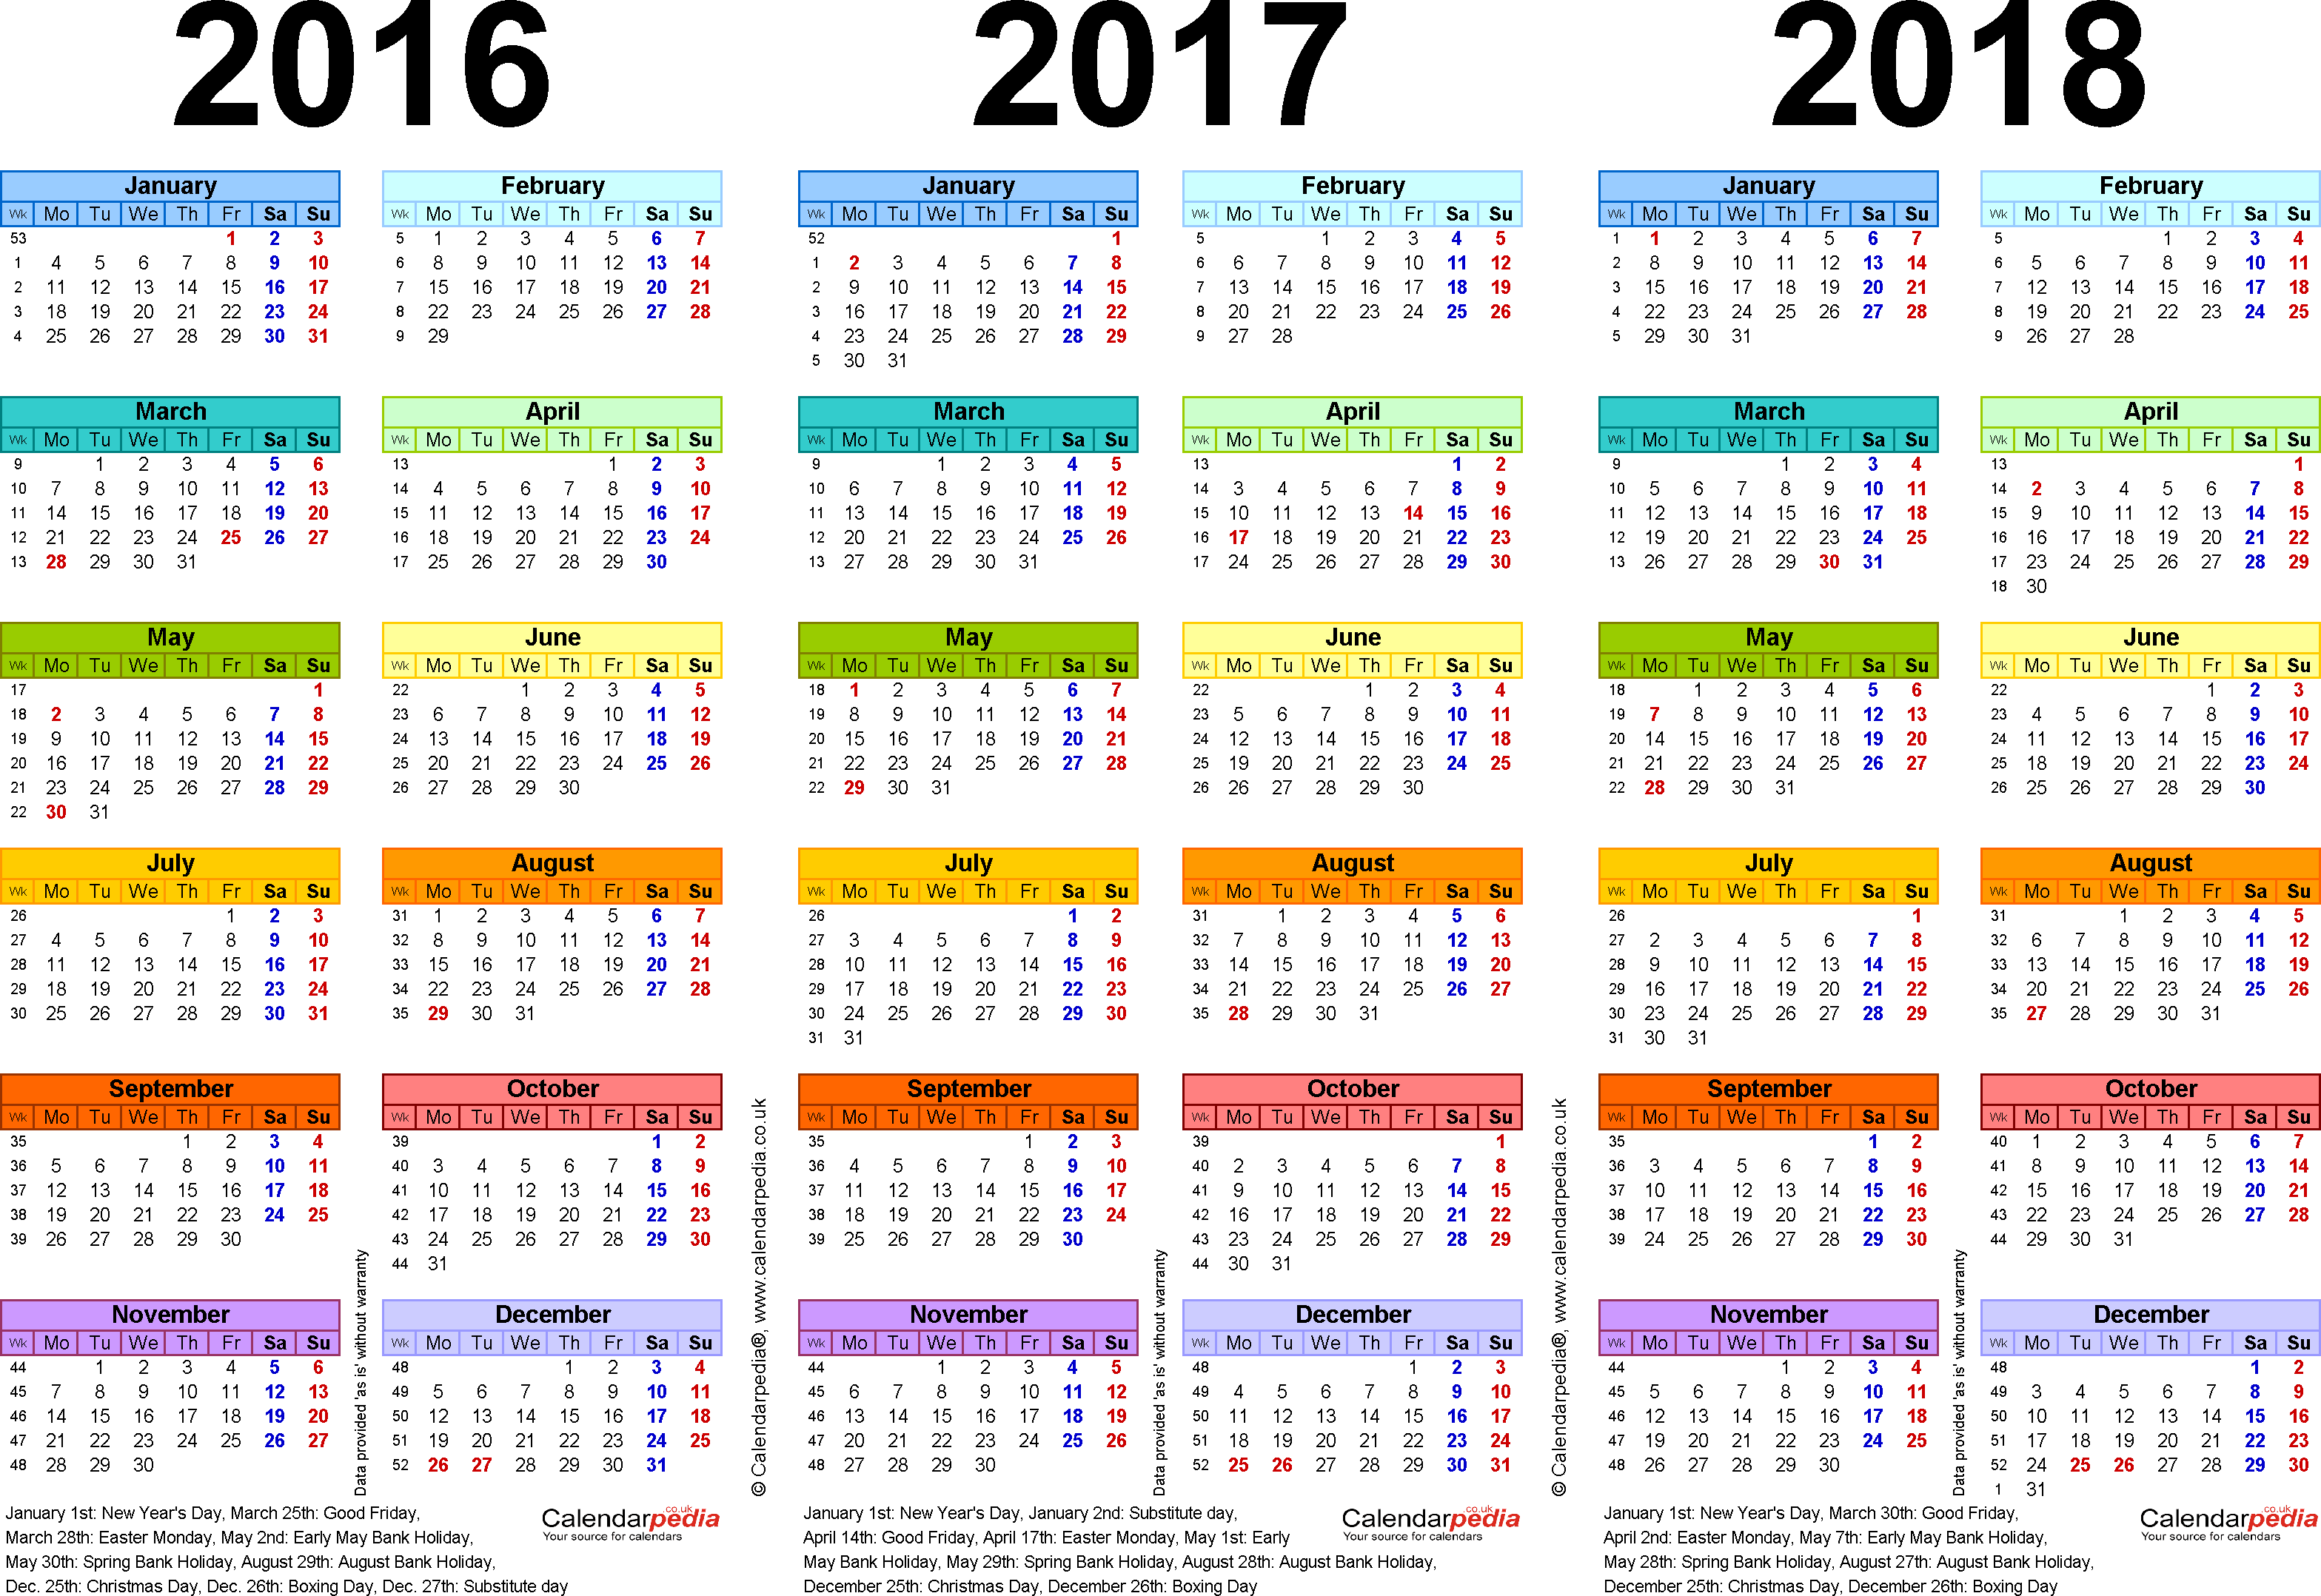 Template 1: Excel template for three year calendar 2016/2017/2018 in colour (landscape orientation, 1 page, A4)